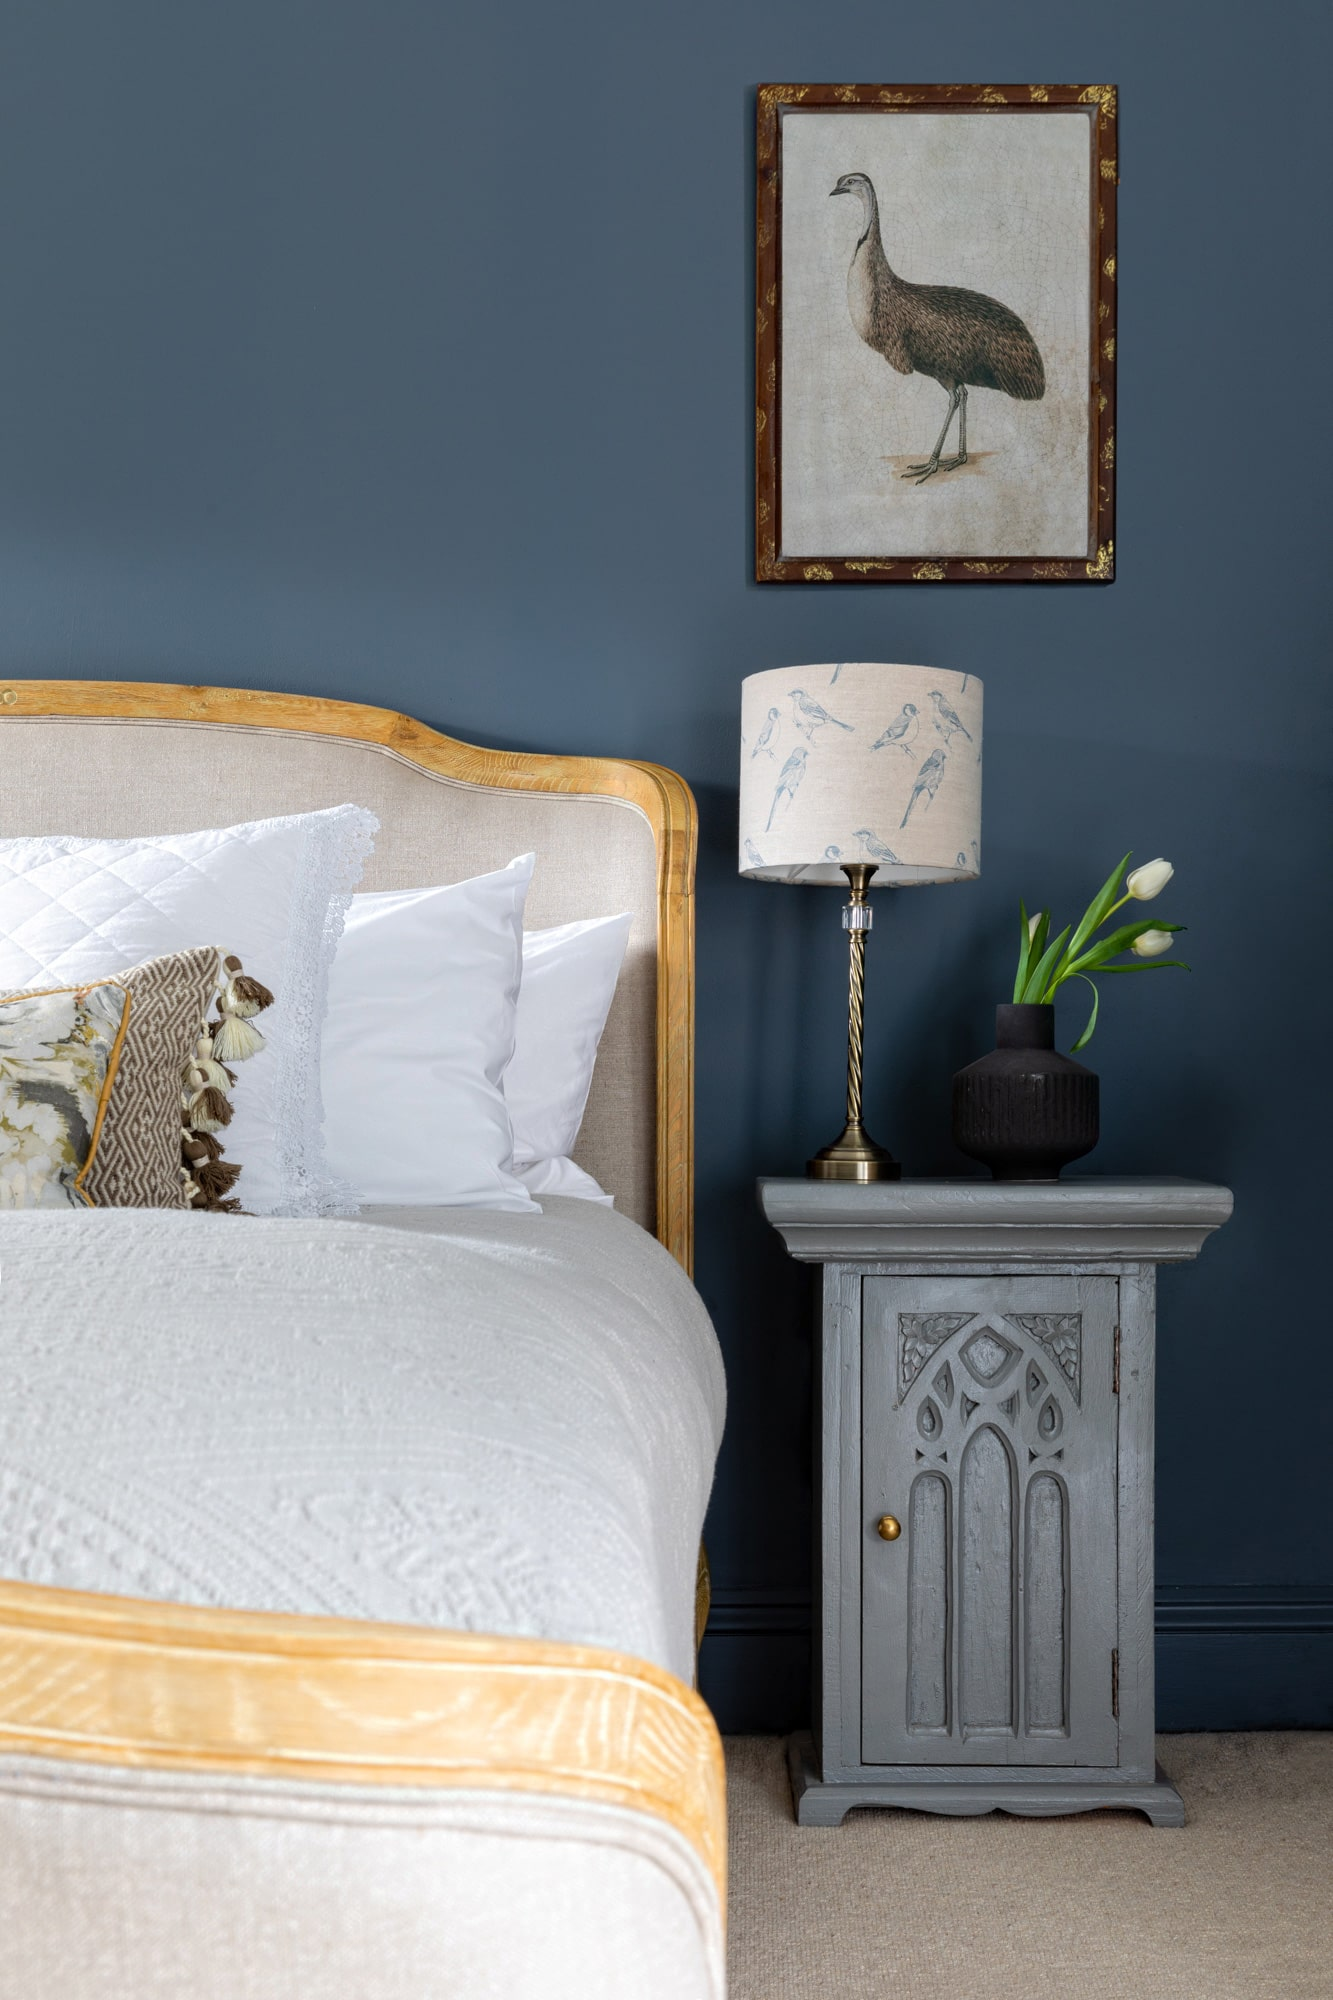 interior detail bedroom photo: dark blue grey walls; bed with white bedding; grey wooden bedside table, lamp and vase with tulips; poster with a bird on the wall